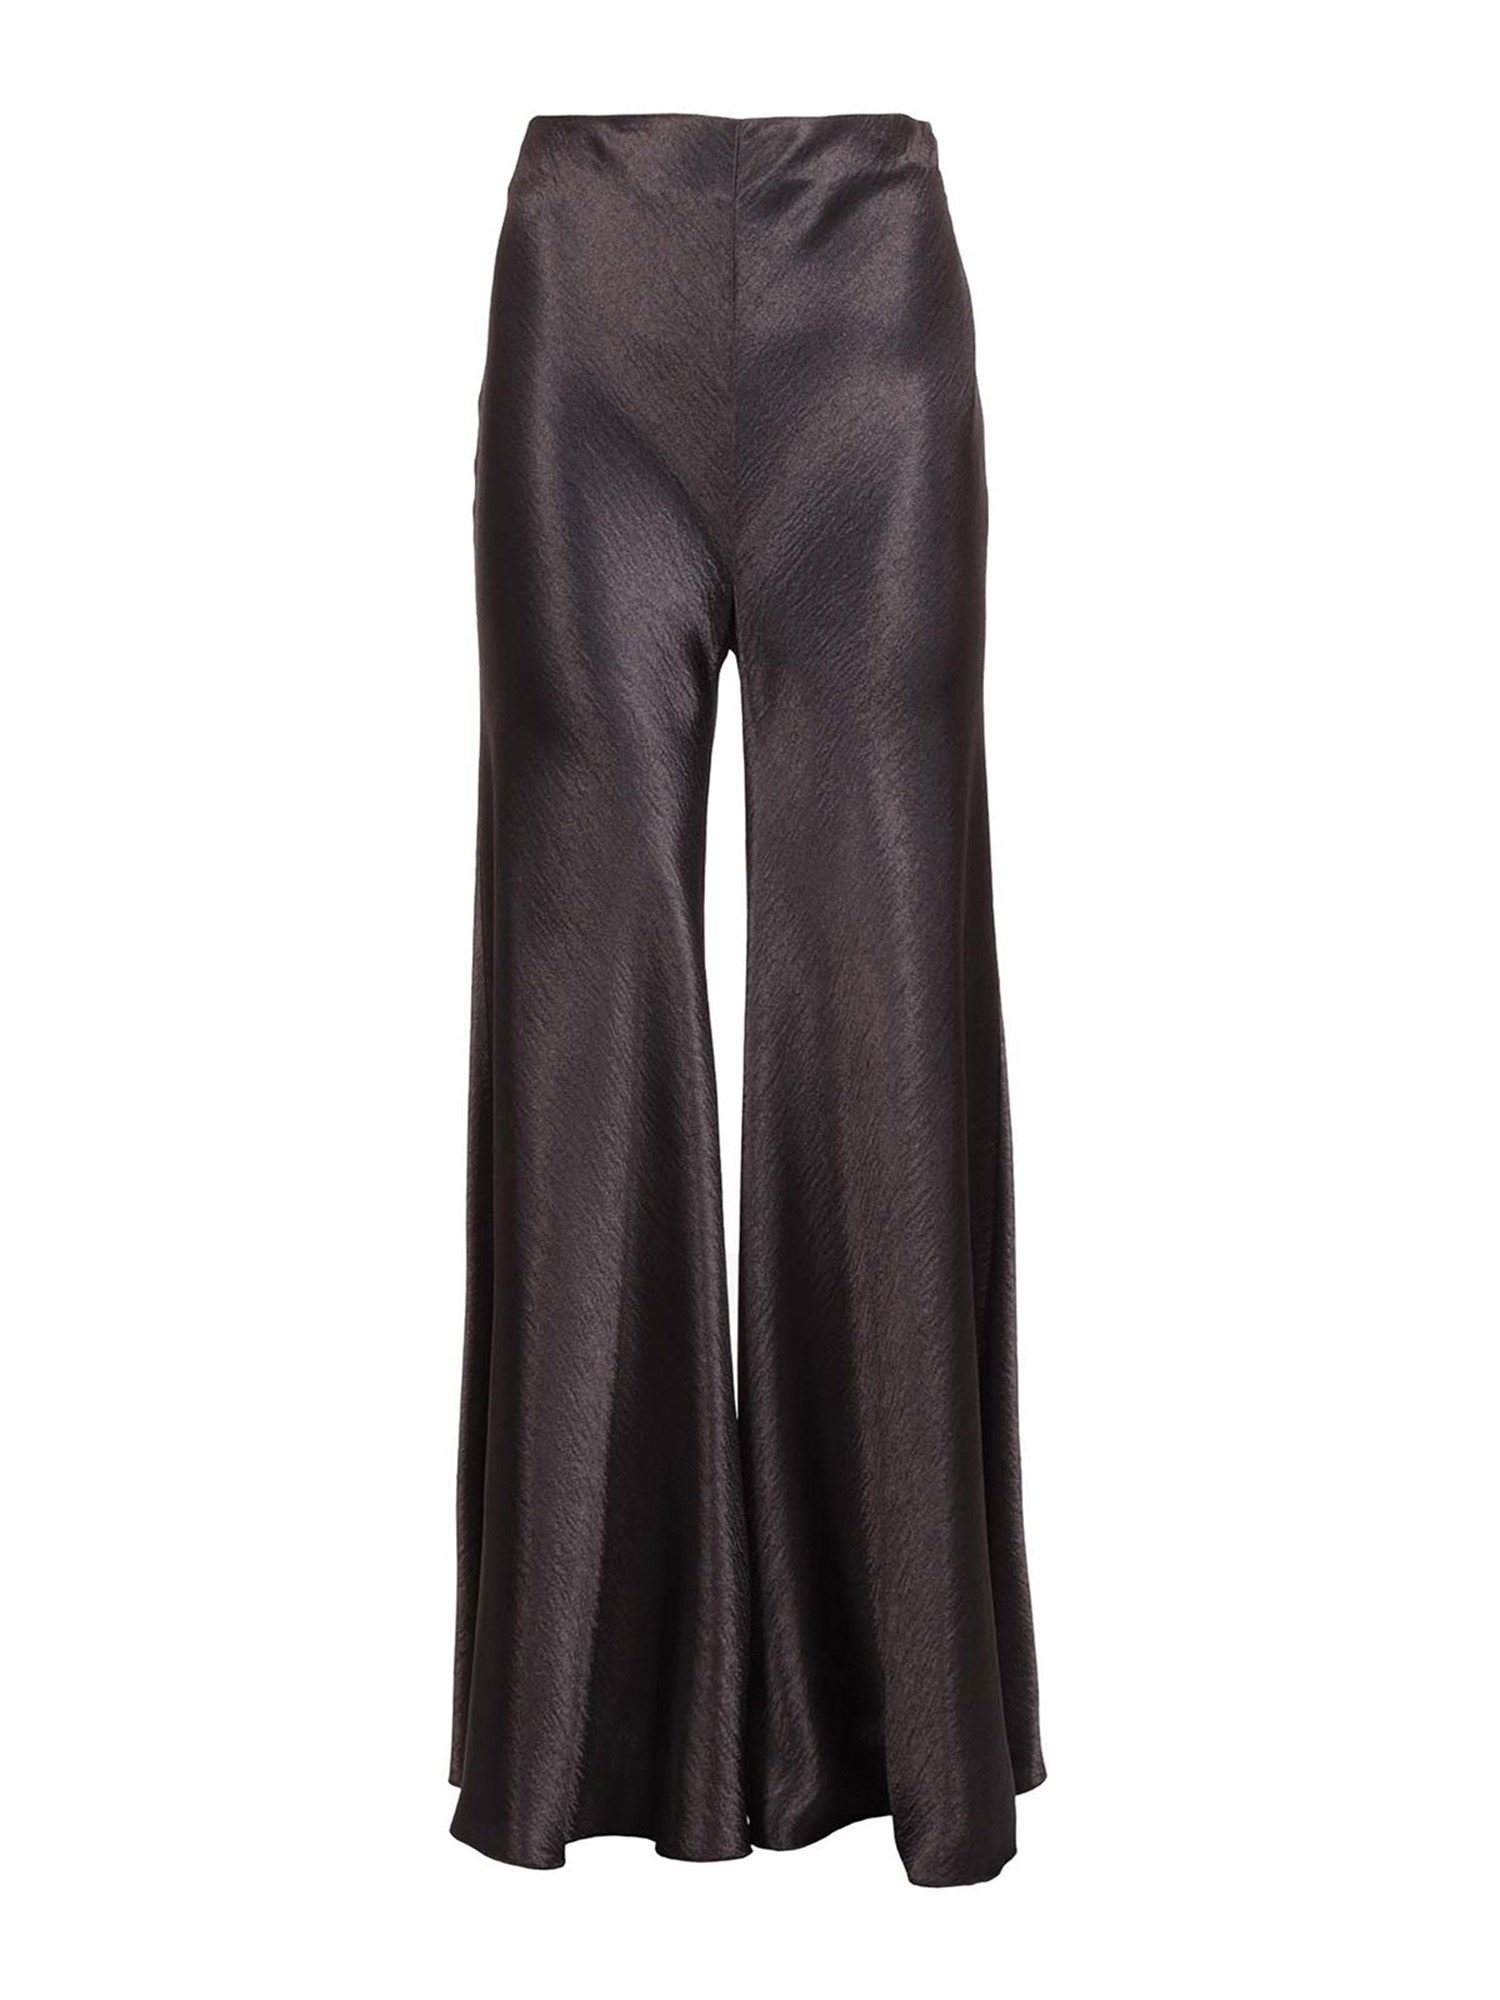 PHILOSOPHY DI LORENZO SERAFINI SHIMMERING EFFECT PANTS IN BLACK